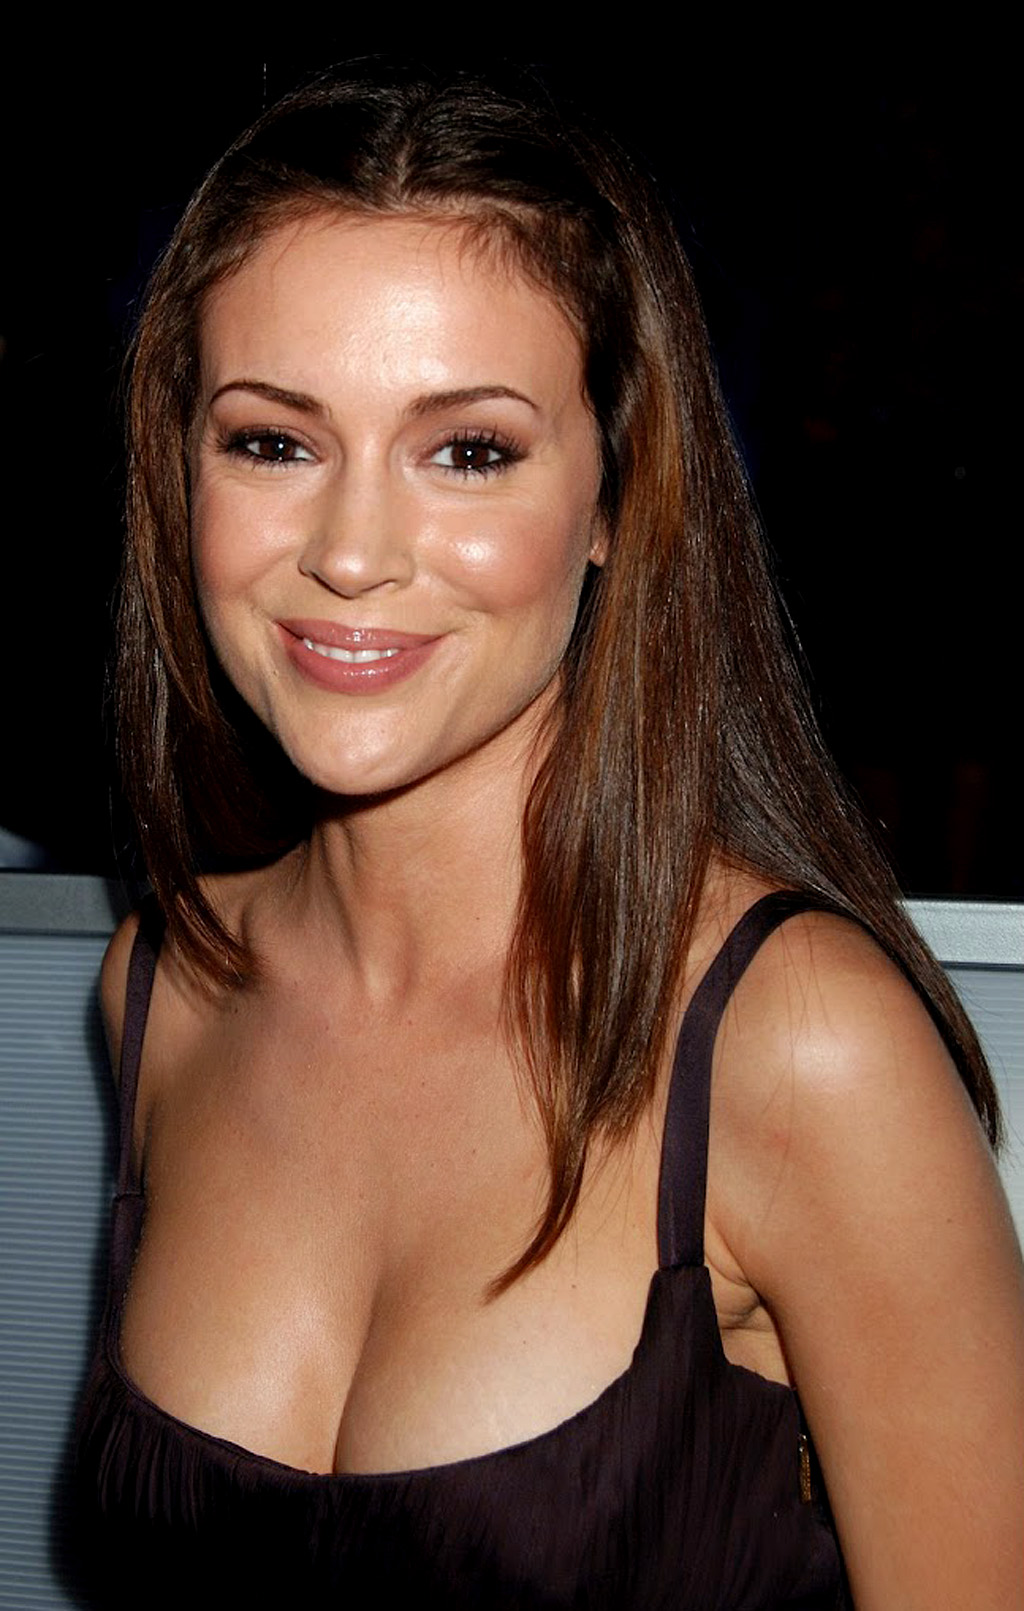 Alyssa Milano Body Measurements - Celebrity Bra Size, Body ...